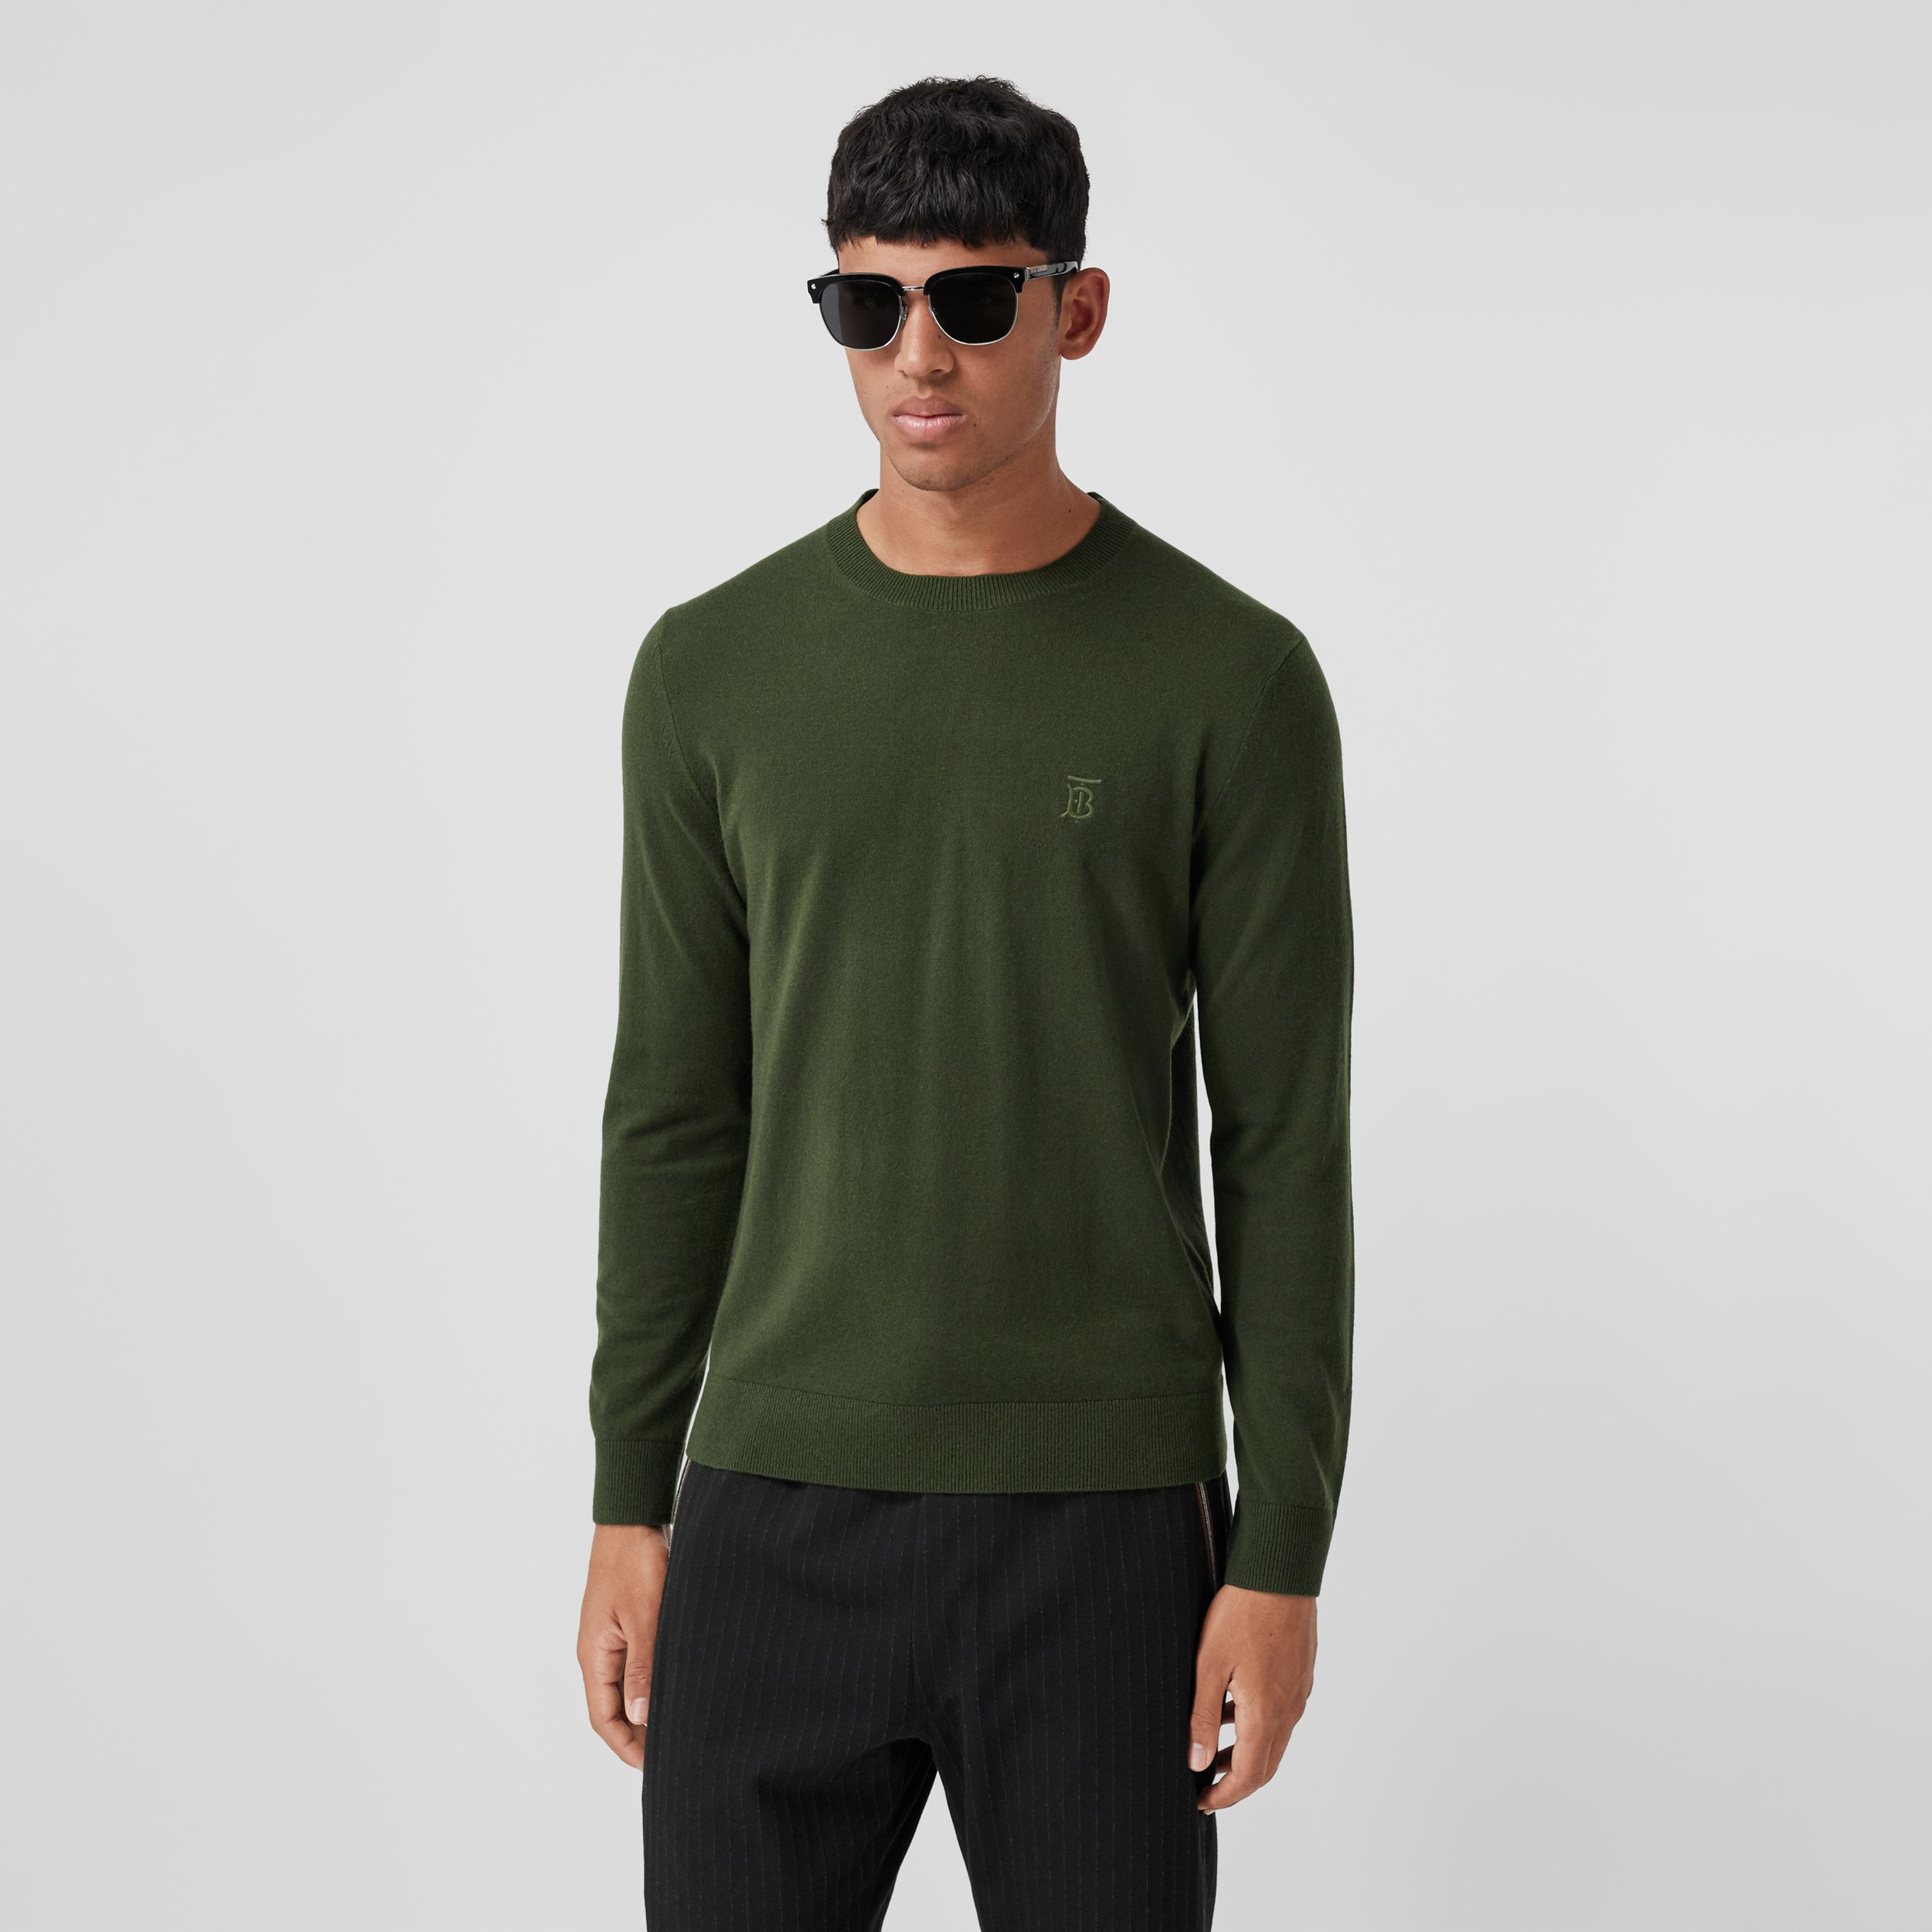 Monogram Motif Cashmere Sweater in Deep Khaki - Men | Burberry - 1